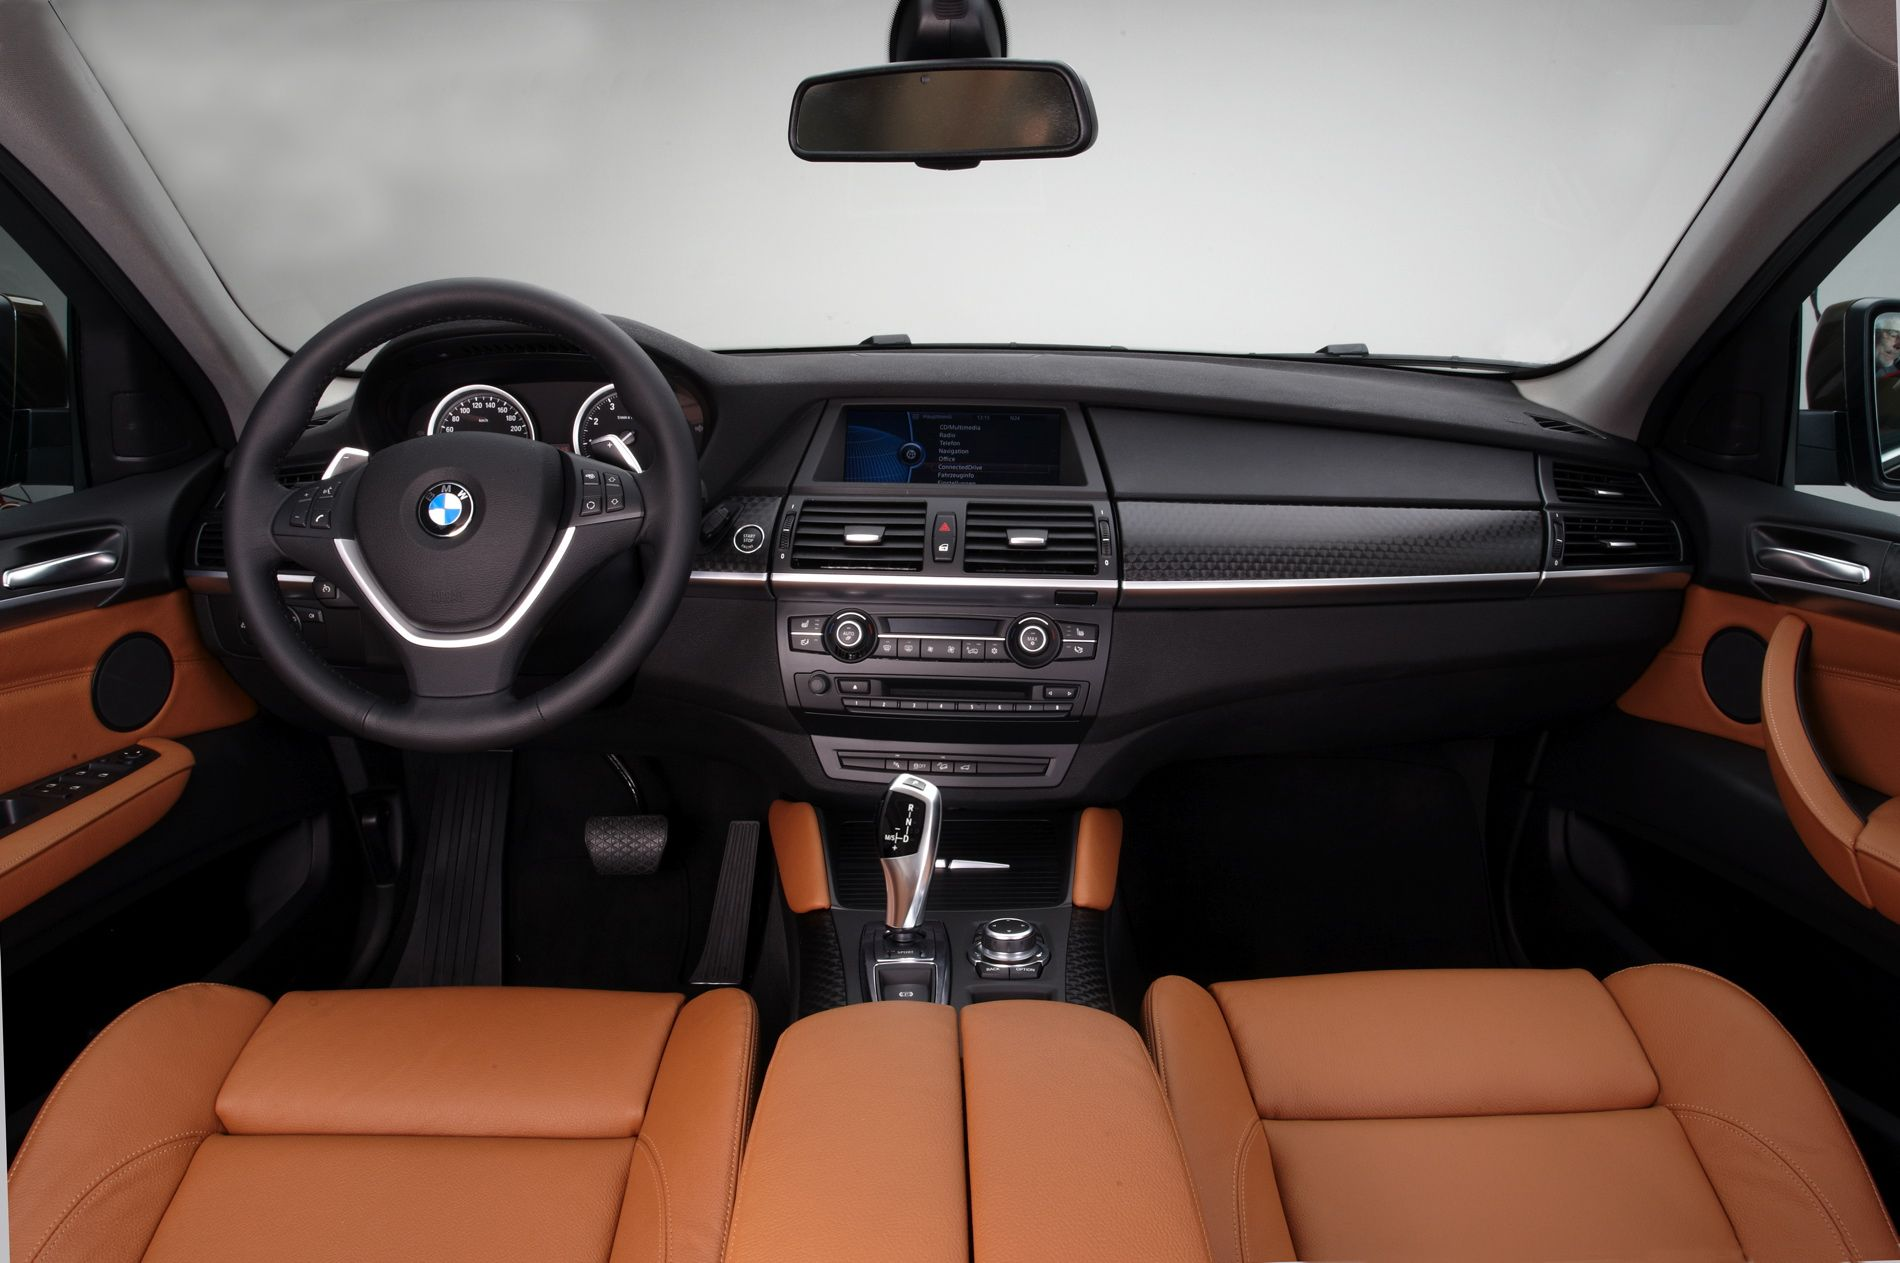 Interieur X6 Bmw Interior Of Bmw X6 The Car Spot Bmw Bmw X6 Bmw Cars Bmw X6